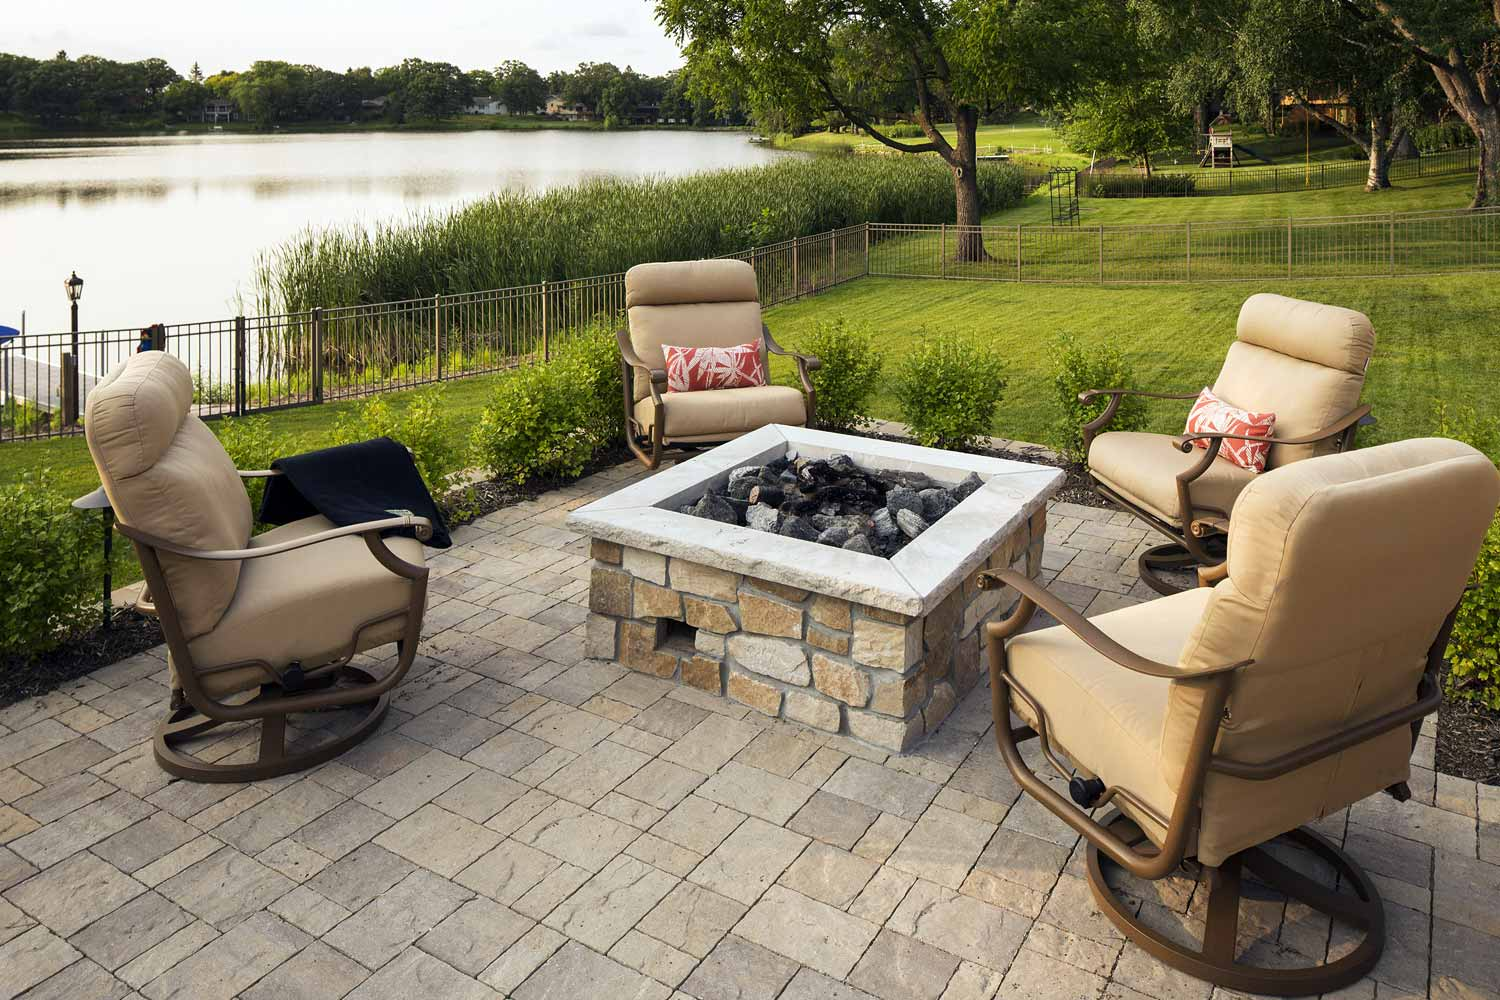 Seating around the built-in firepit